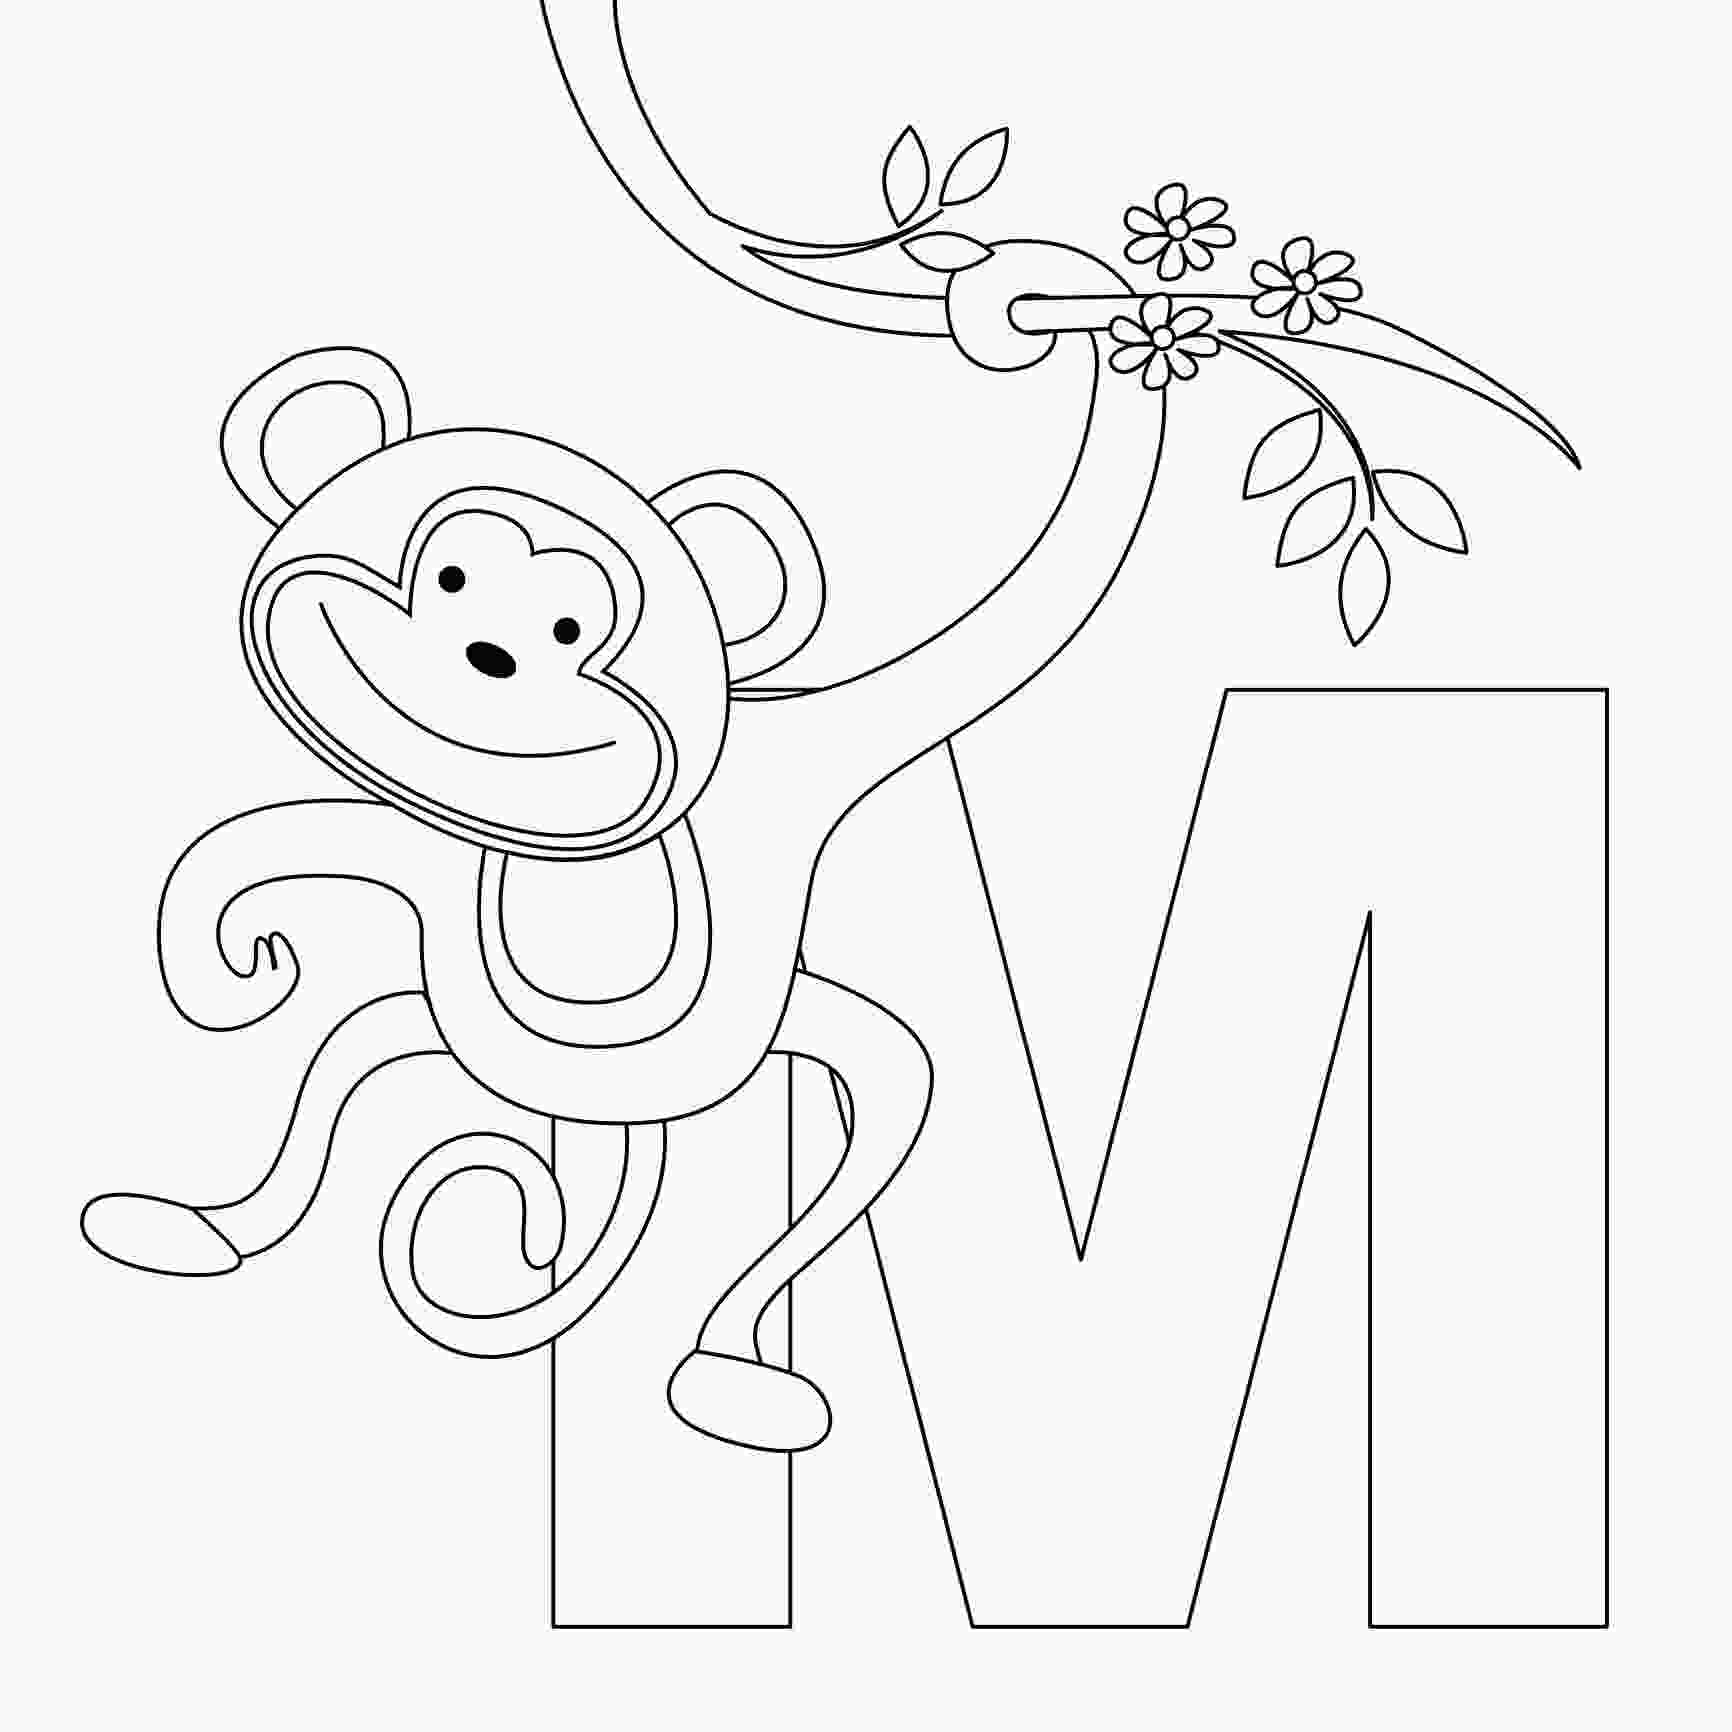 coloring pages monkey free printable monkey coloring pages for kids